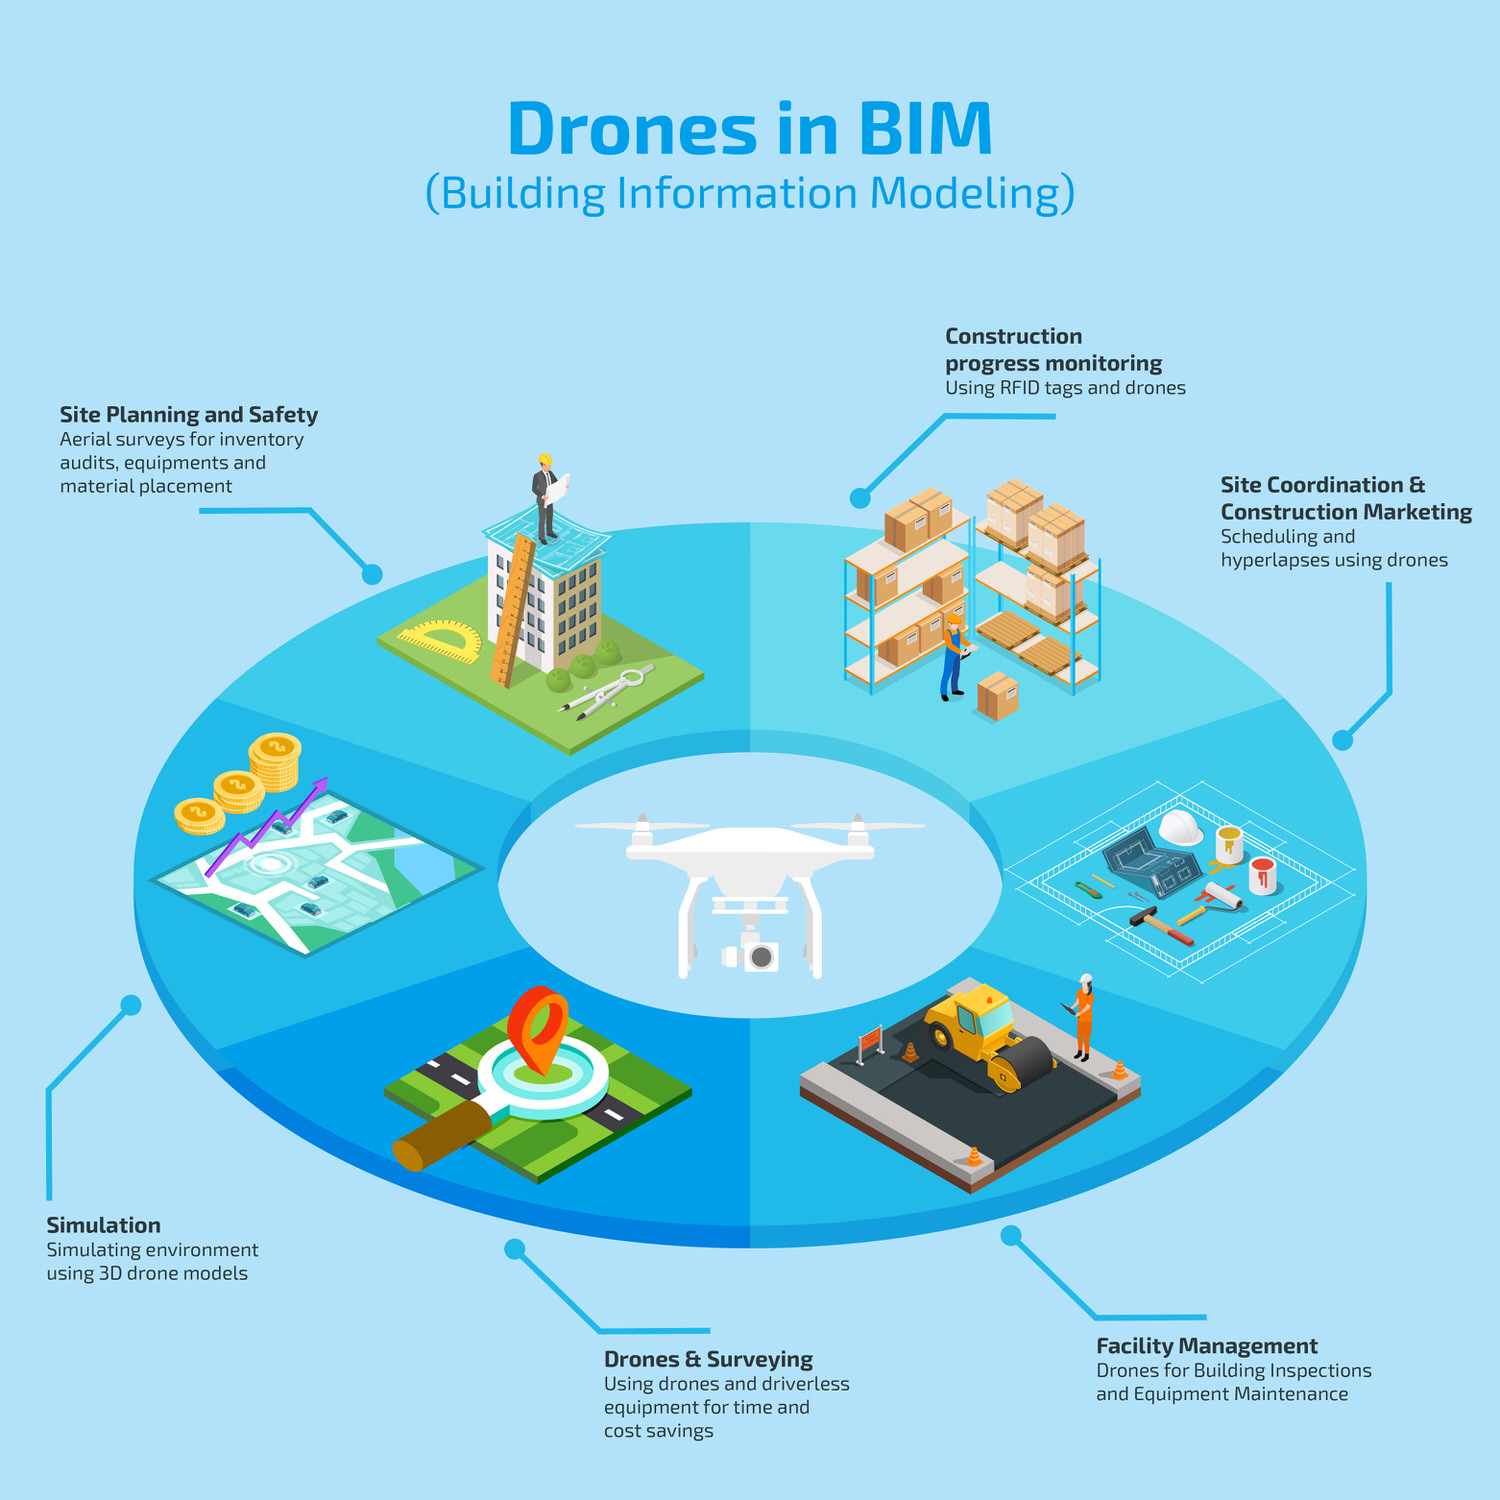 What is BIM? Drones in Construction